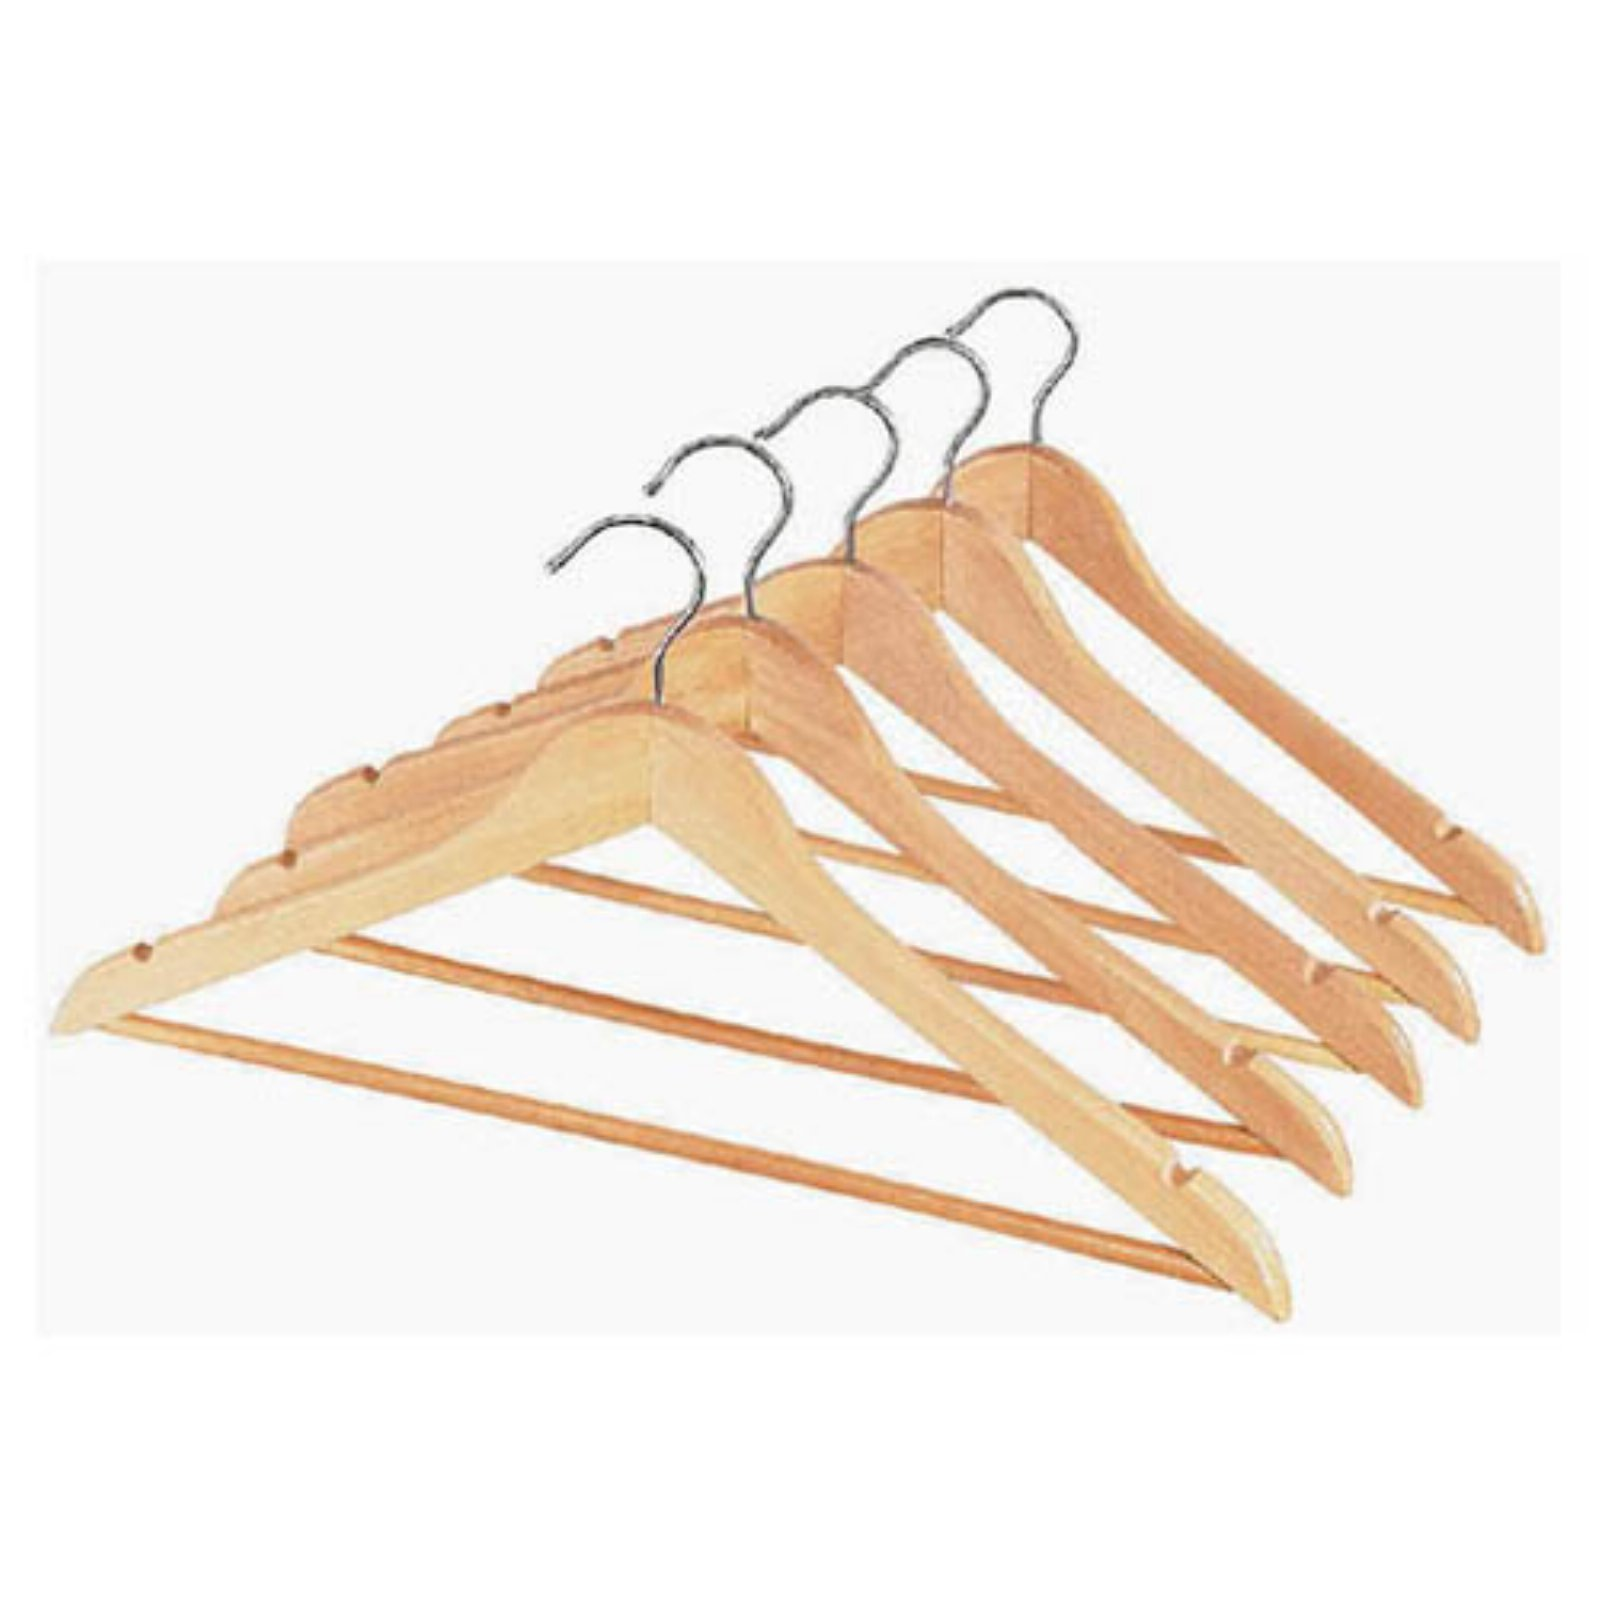 Whitmor GRADE A Natural Wood Suit Hangers Set of 5